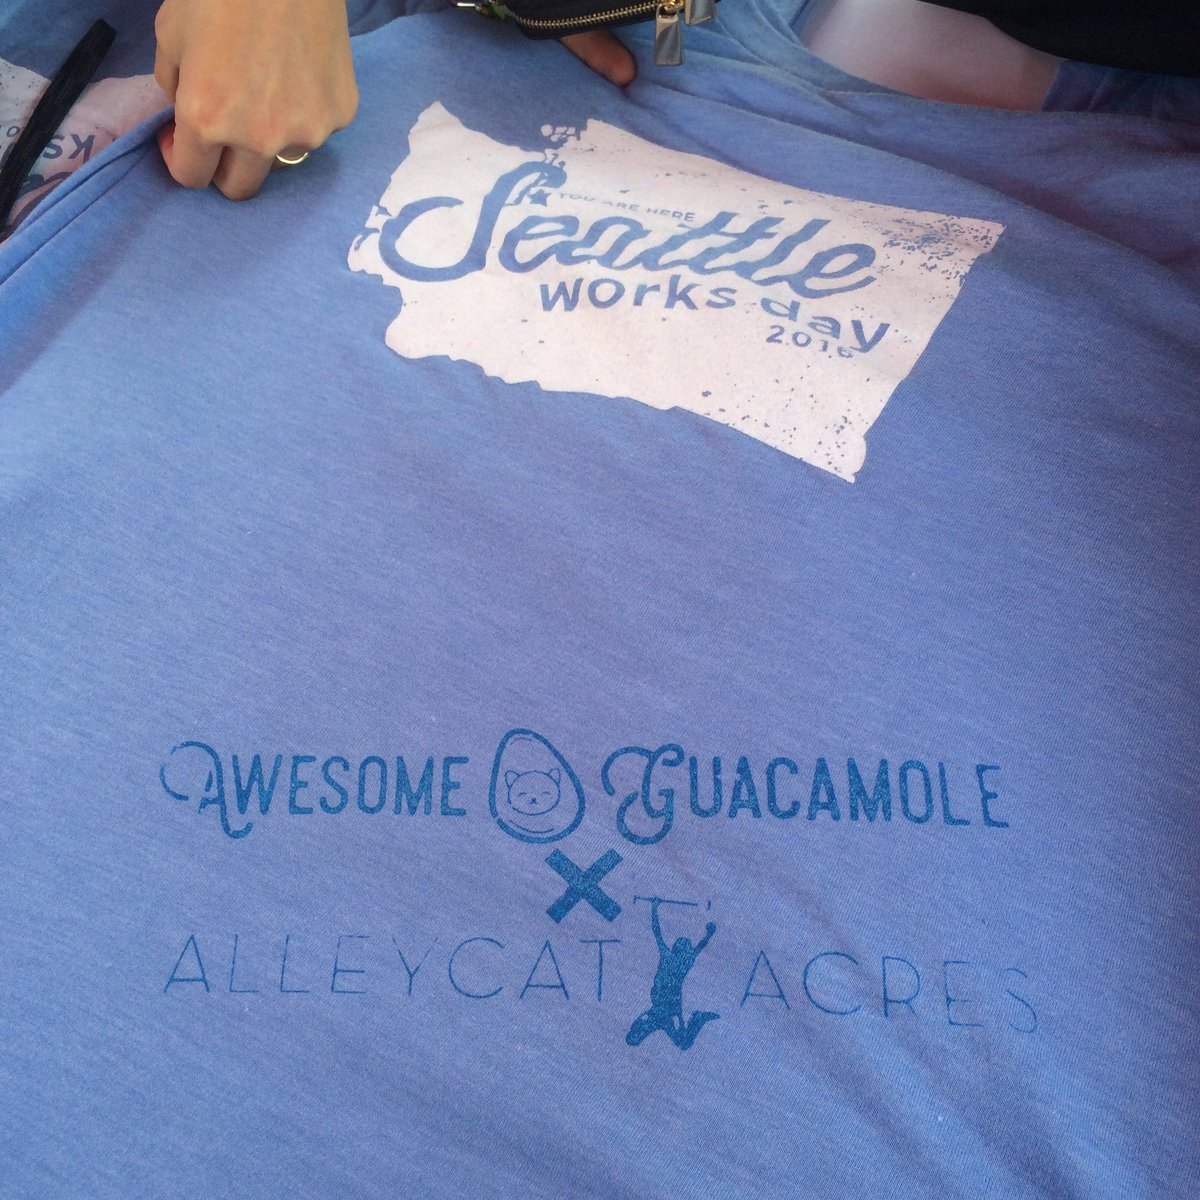 We thought our #SWDay shirts were pretty great before, but then Awesome Guacamole added their flair! https://t.co/4JeHt2BNNC